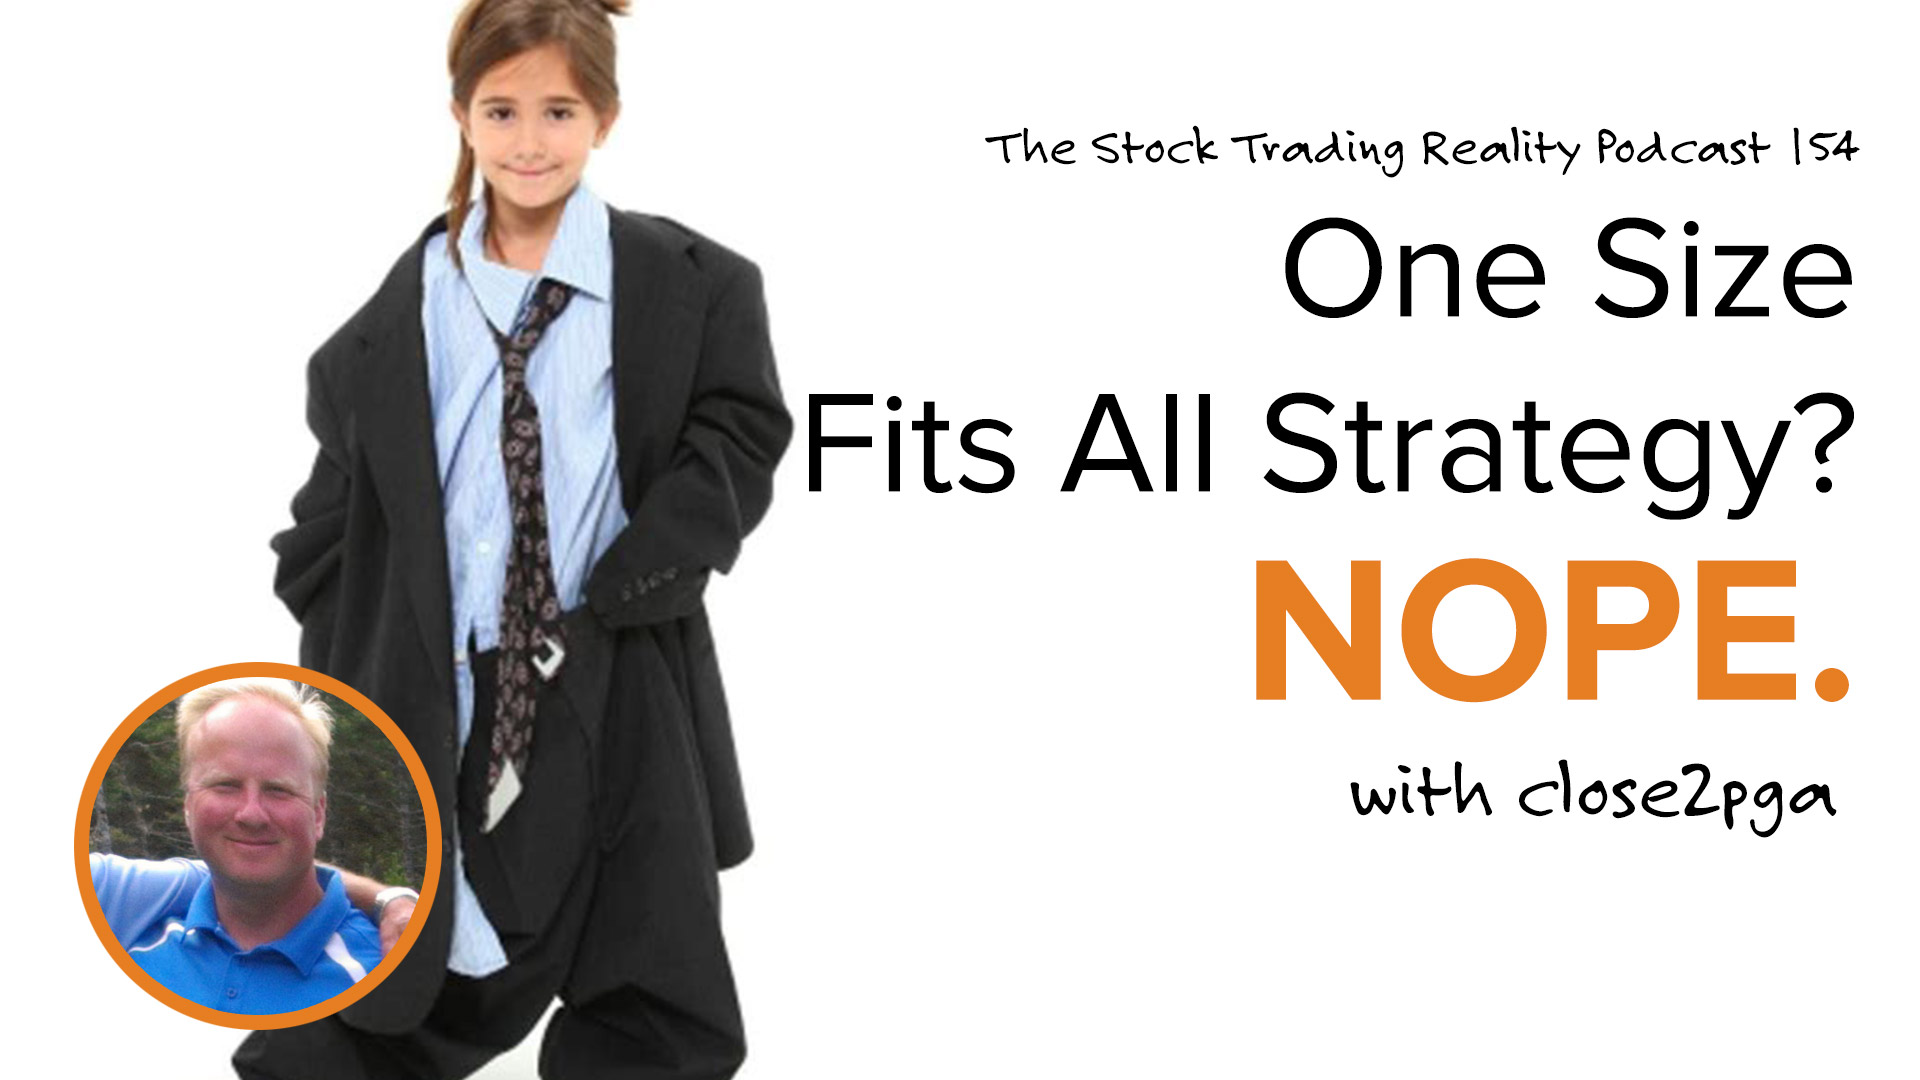 STR 154: One Size Fits All Strategy? Nope.